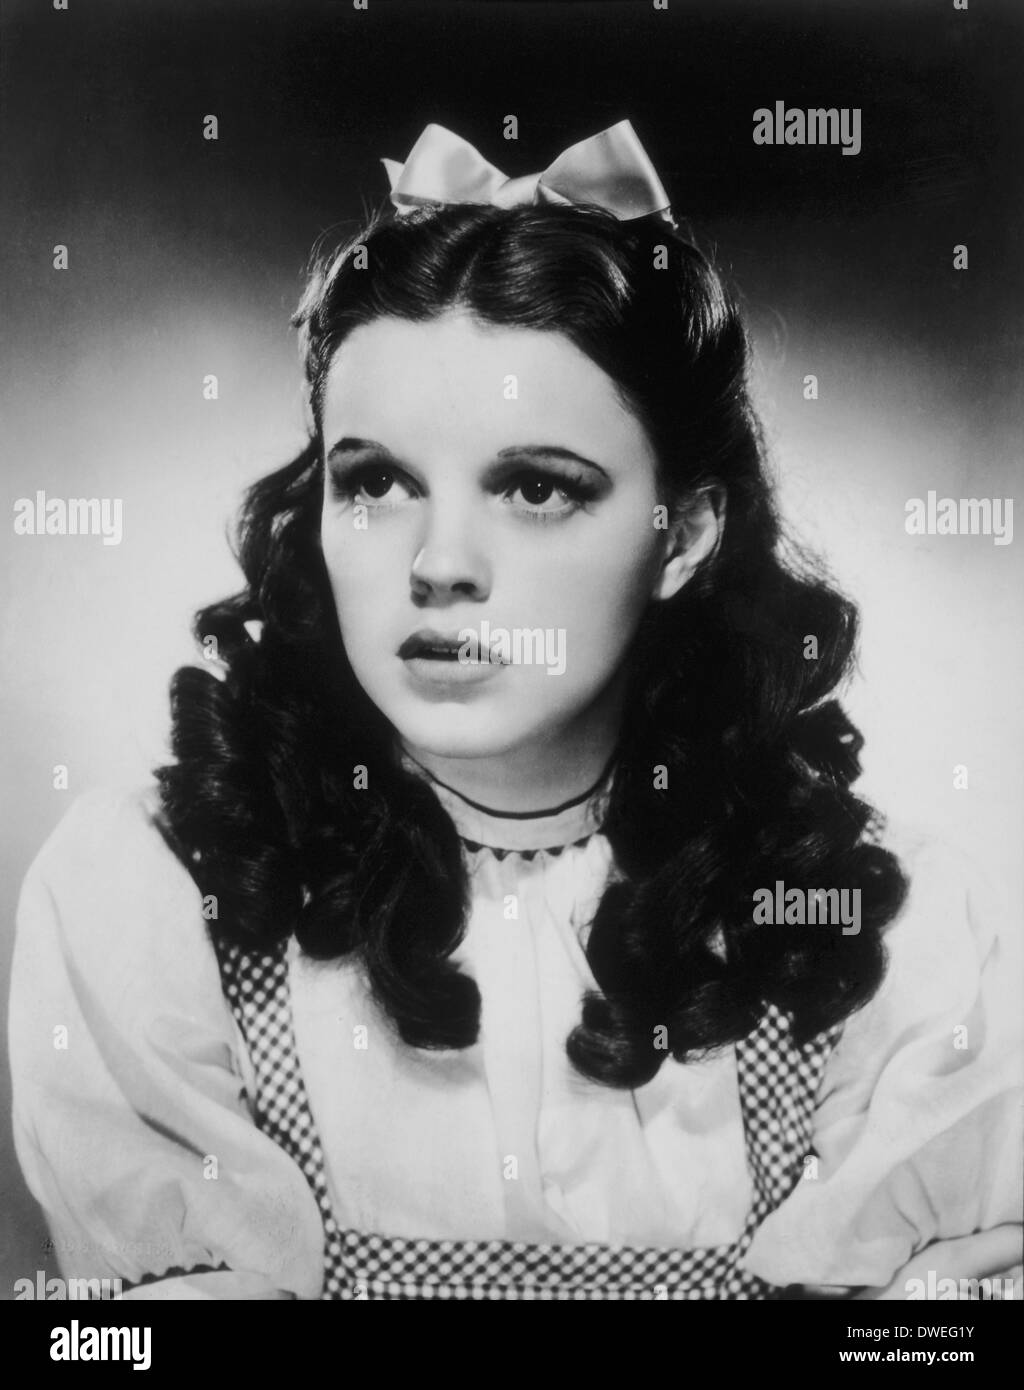 Judy Garland, Portrait, 'The Wizard of Oz', 1939 - Stock Image